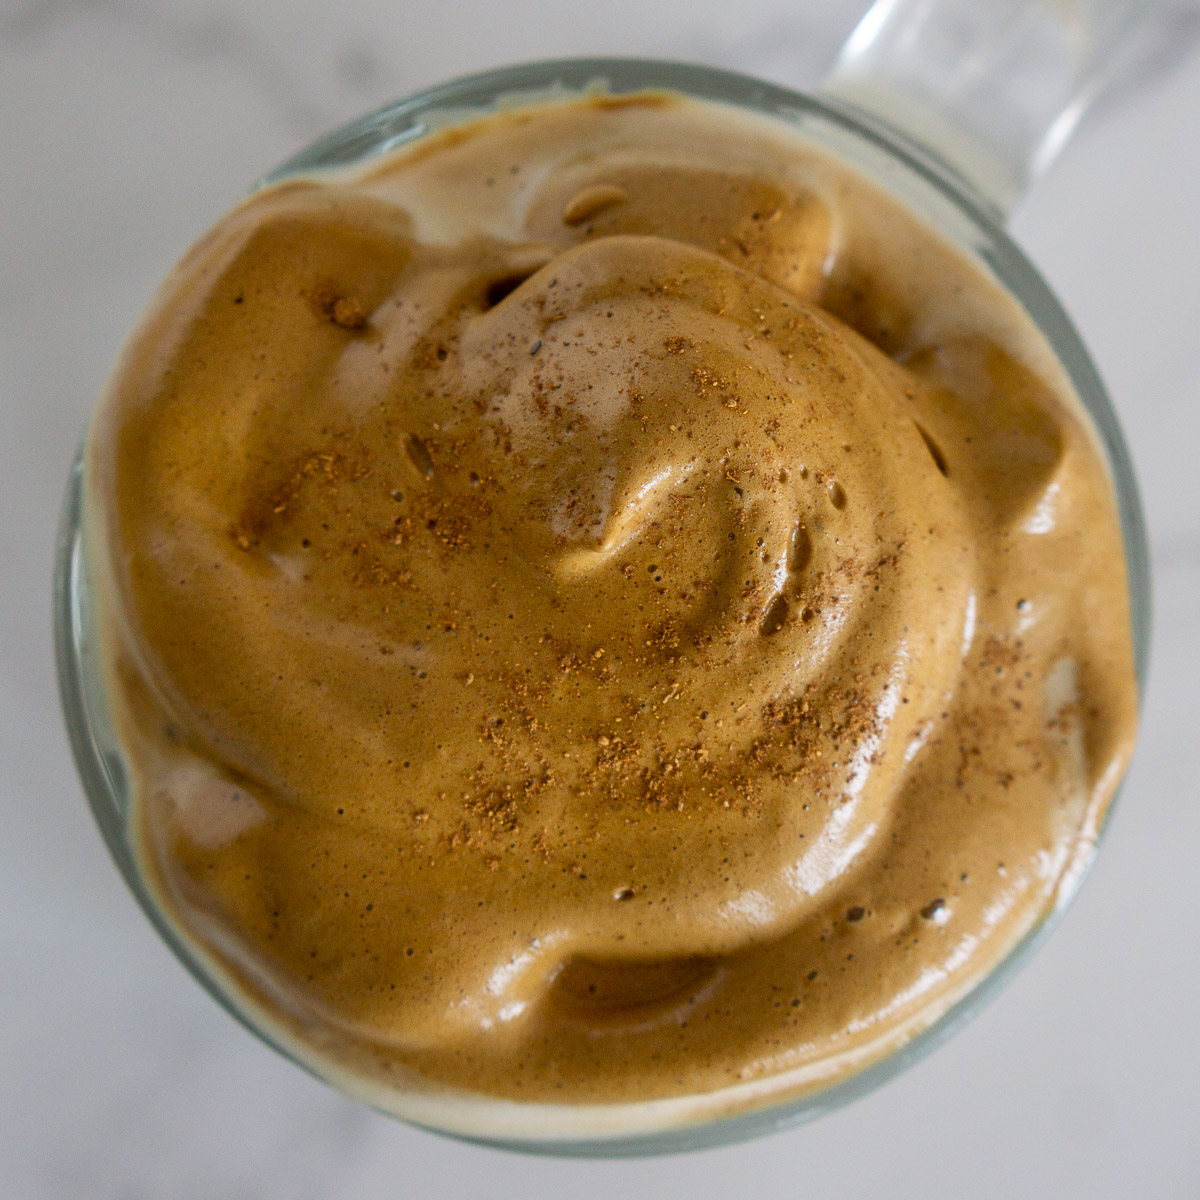 close up of whipped coffee